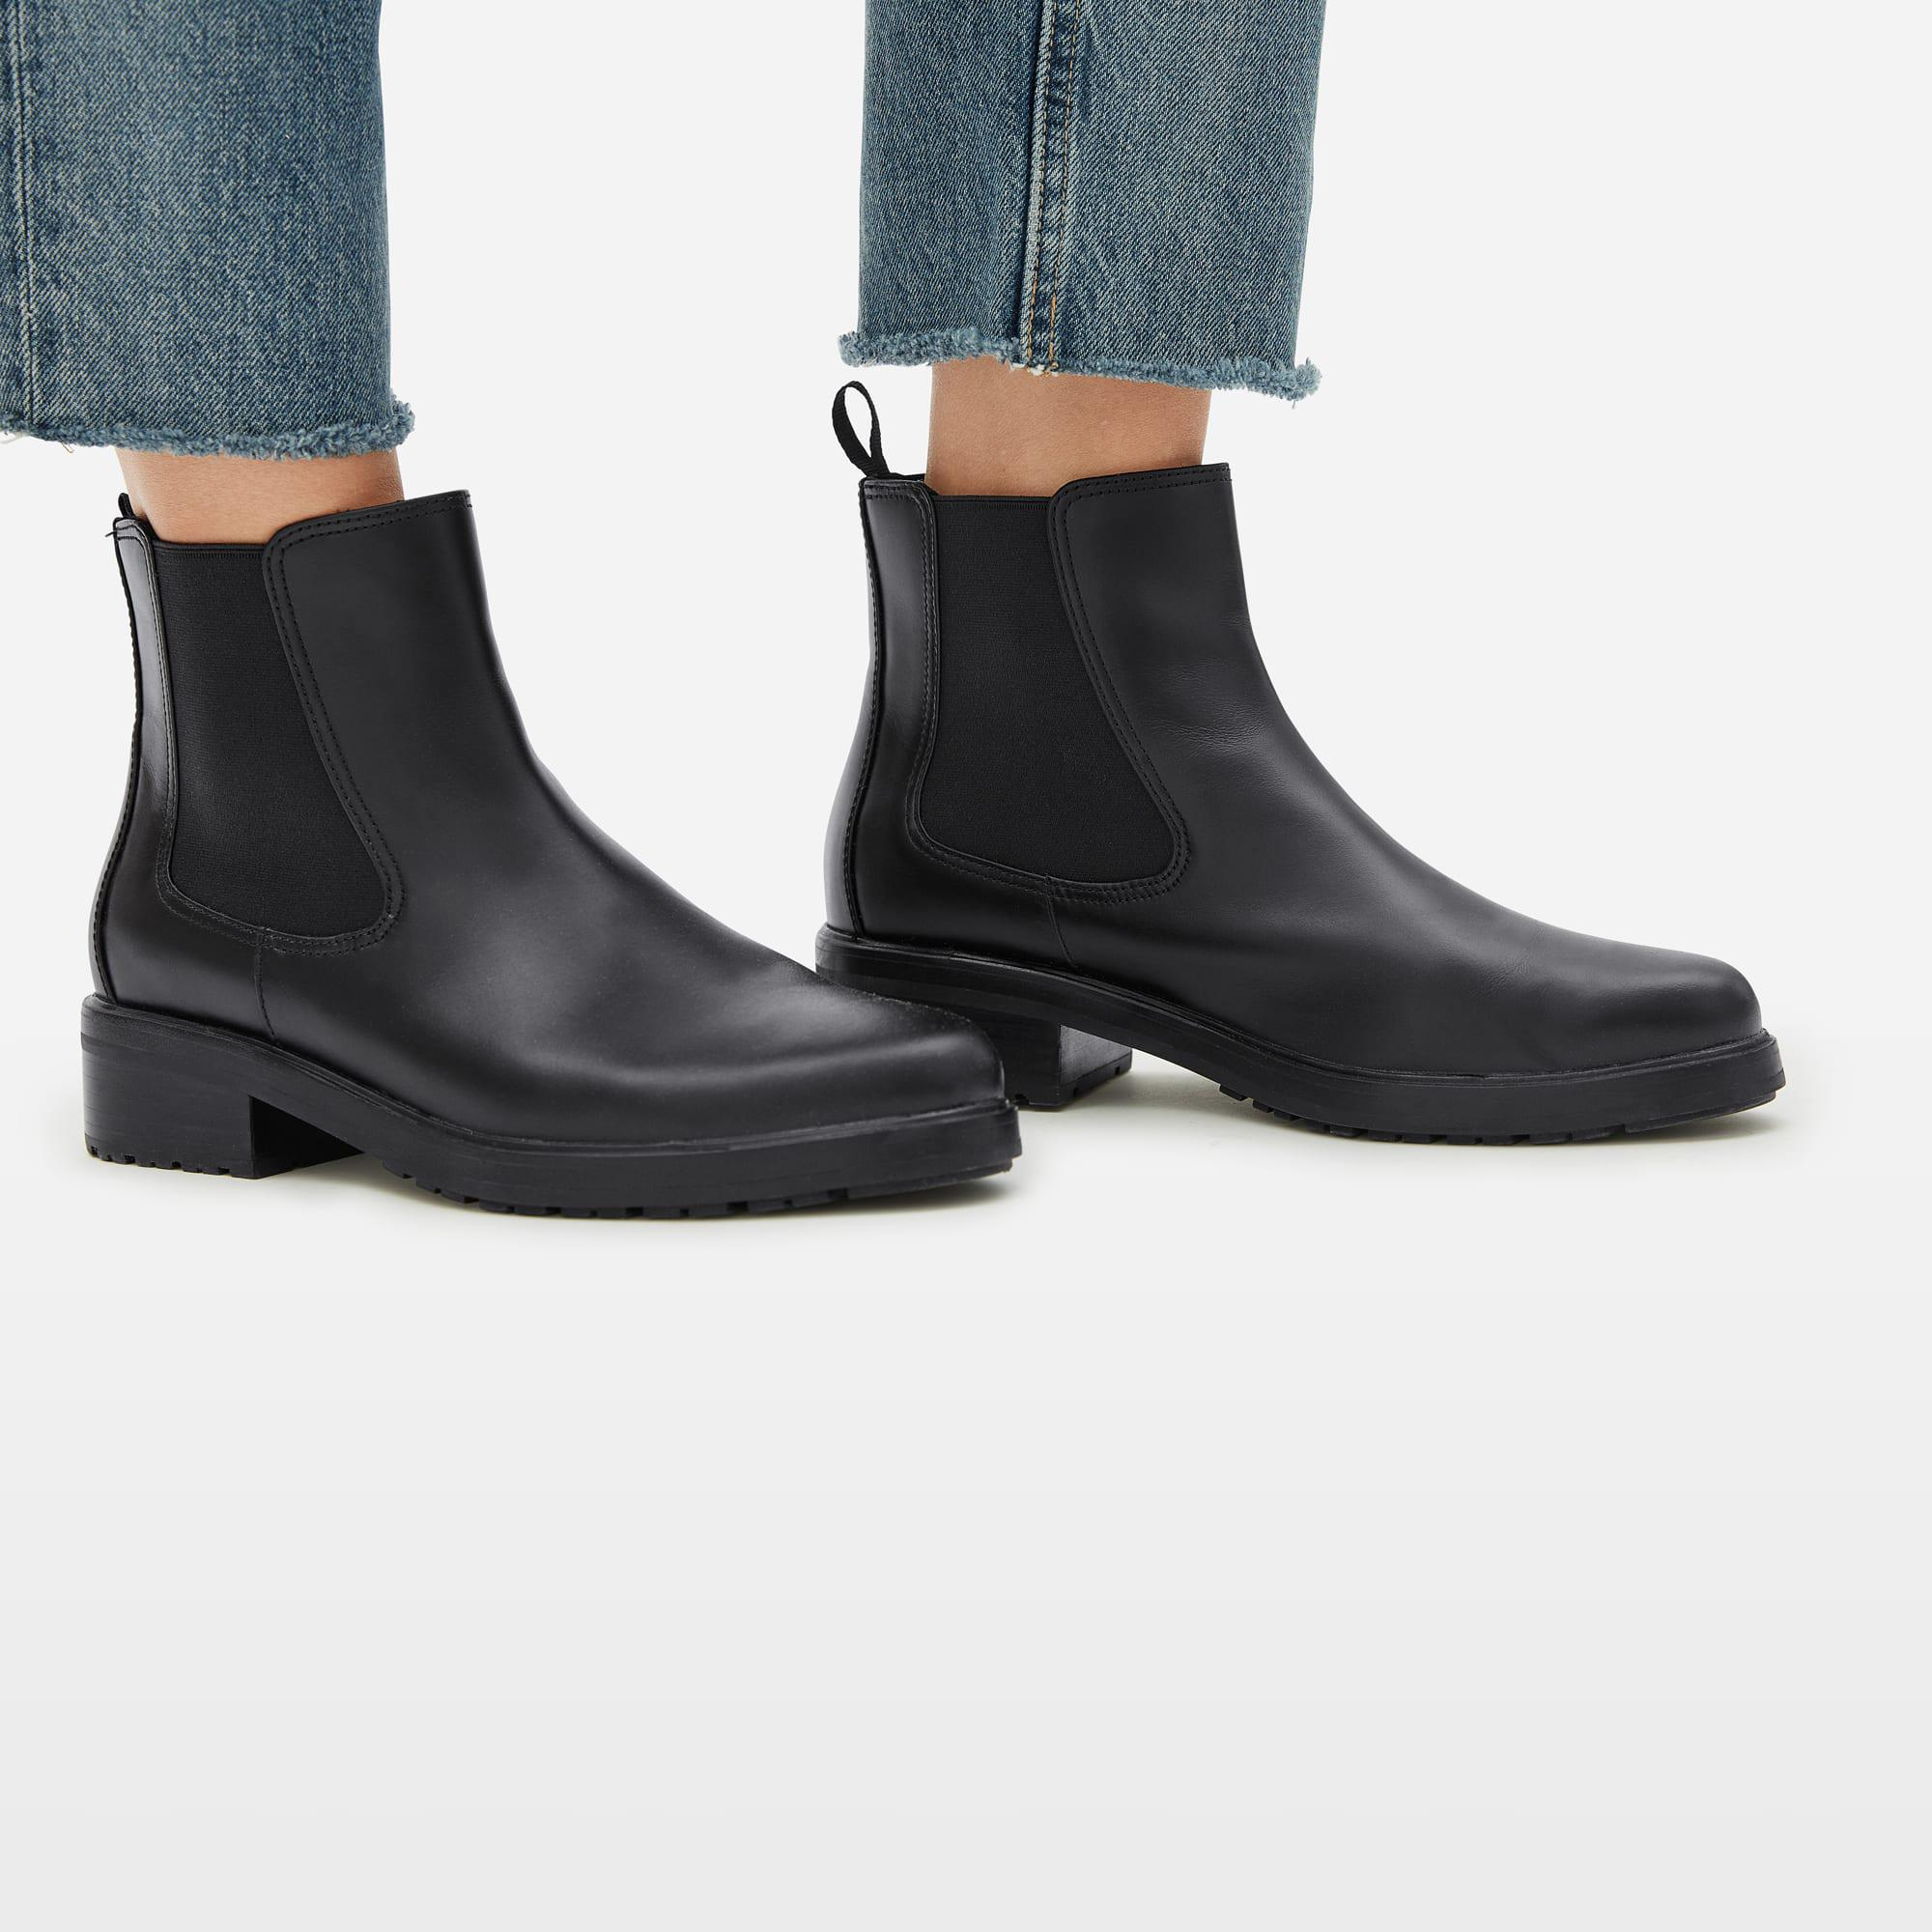 The Modern Utility Chelsea Boot 4